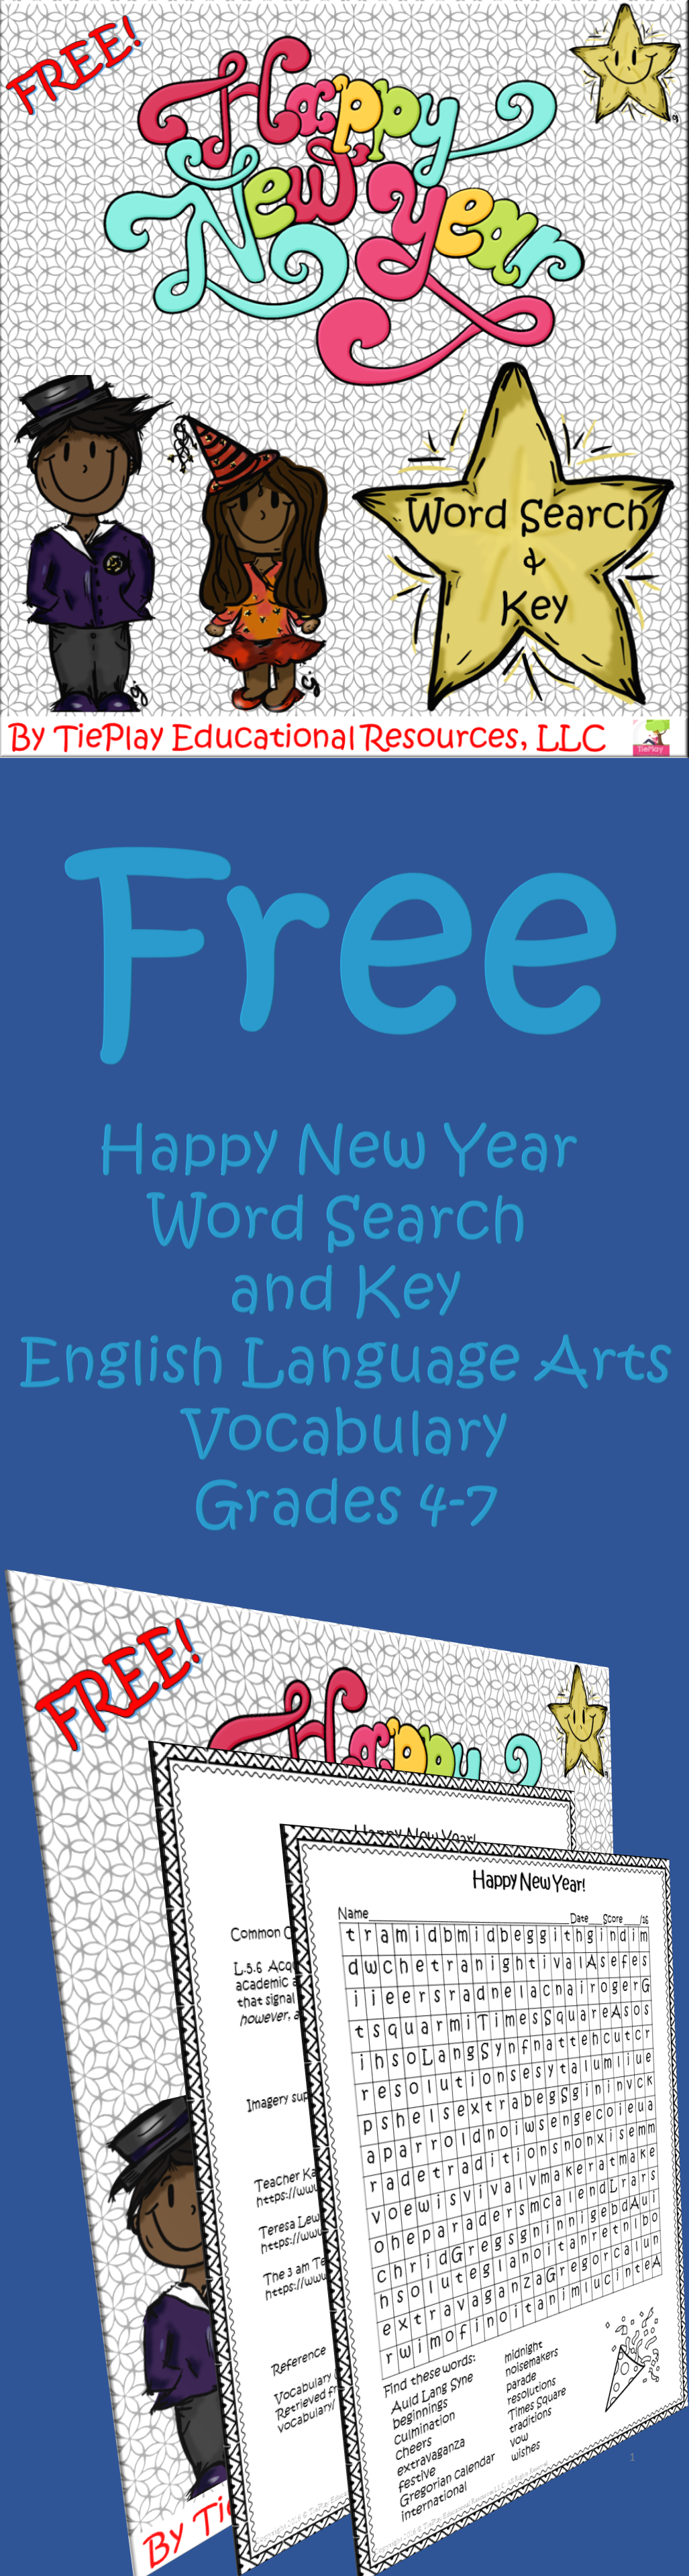 Free Happy New Year Word Search Vocabulary English